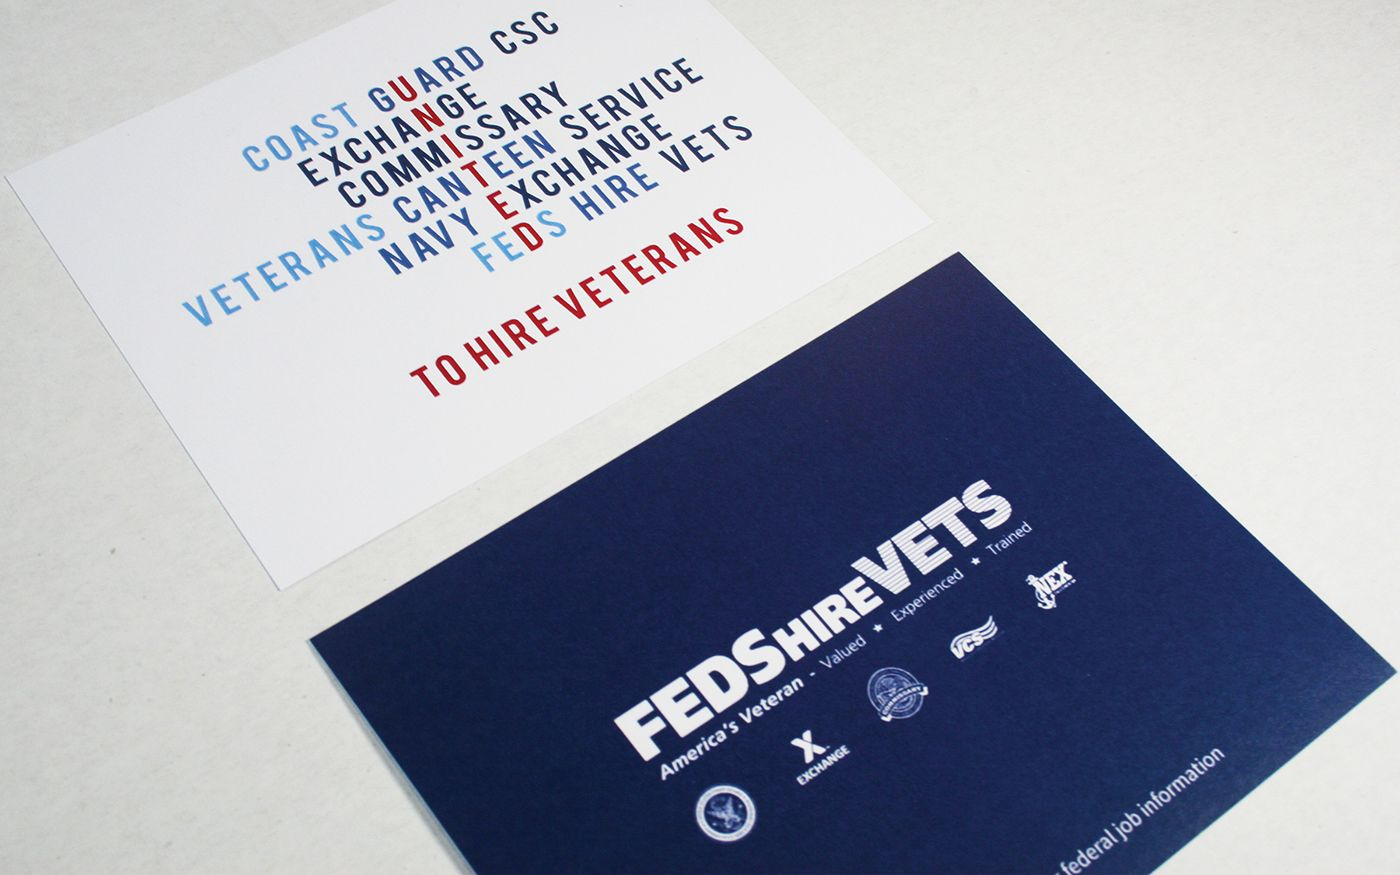 Feds hire vets recruiting takeaway on behance